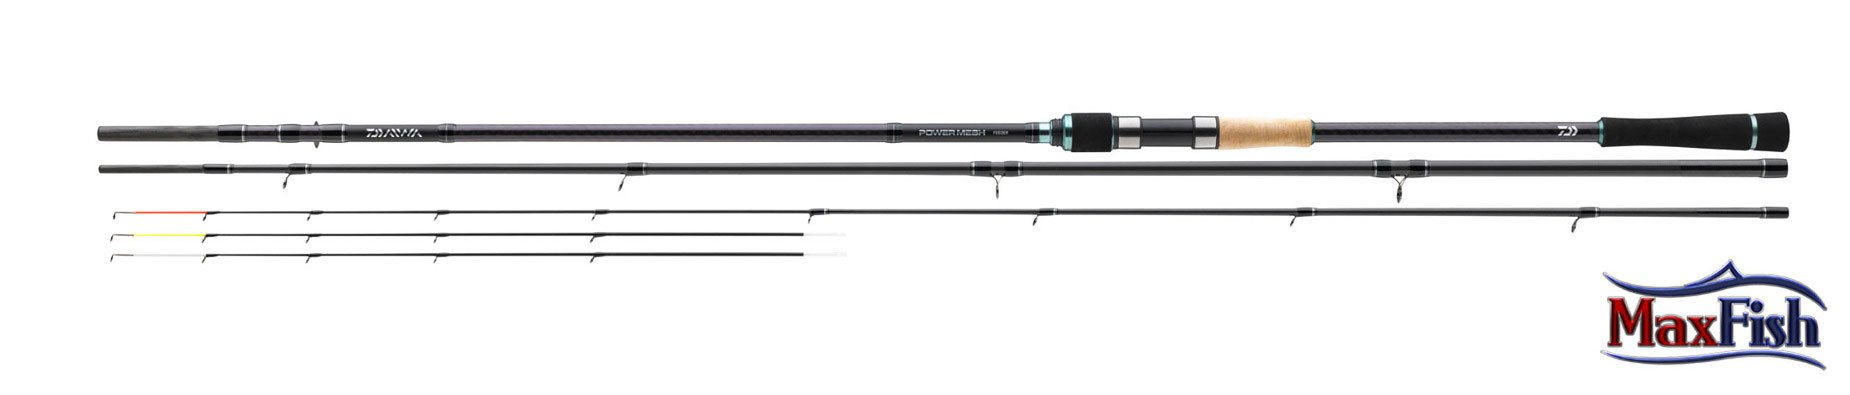 Daiwa Powermesh Feeder  330cm 100g